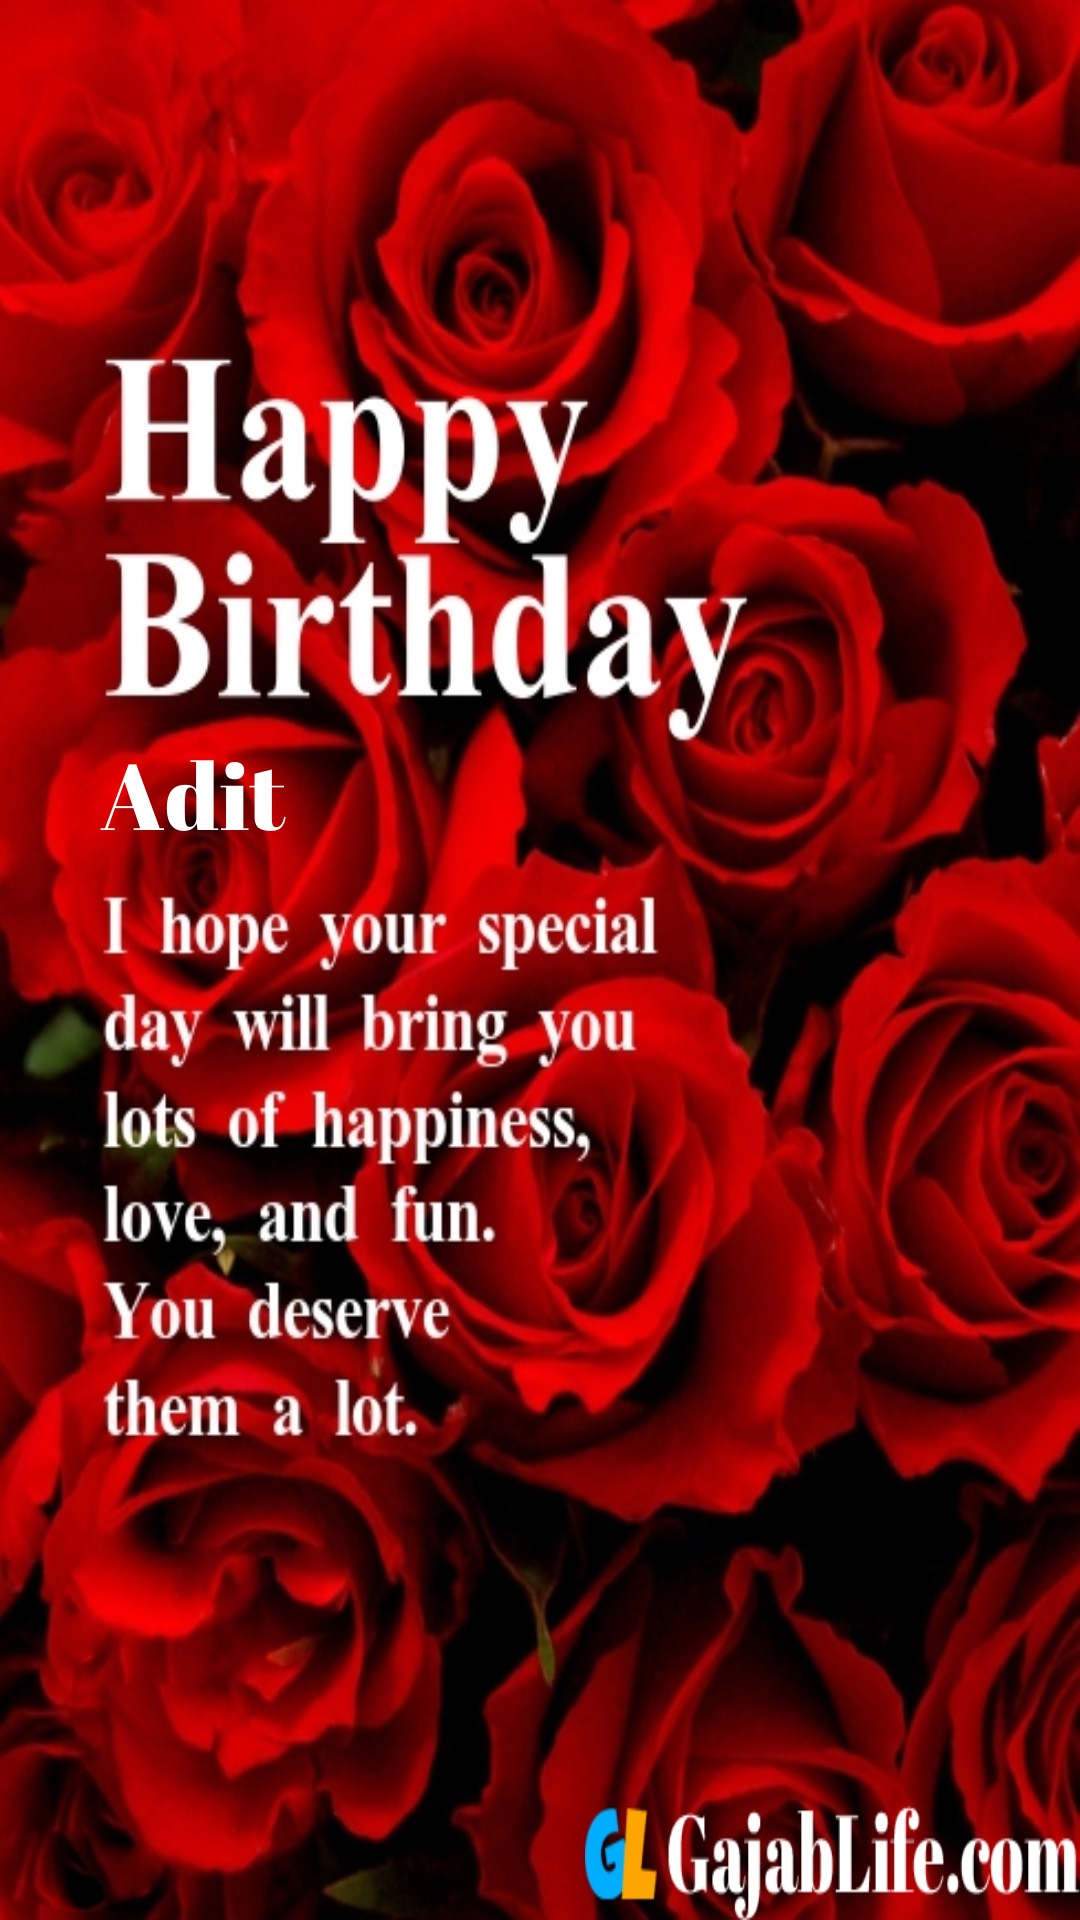 Adit birthday greeting card with rose & love